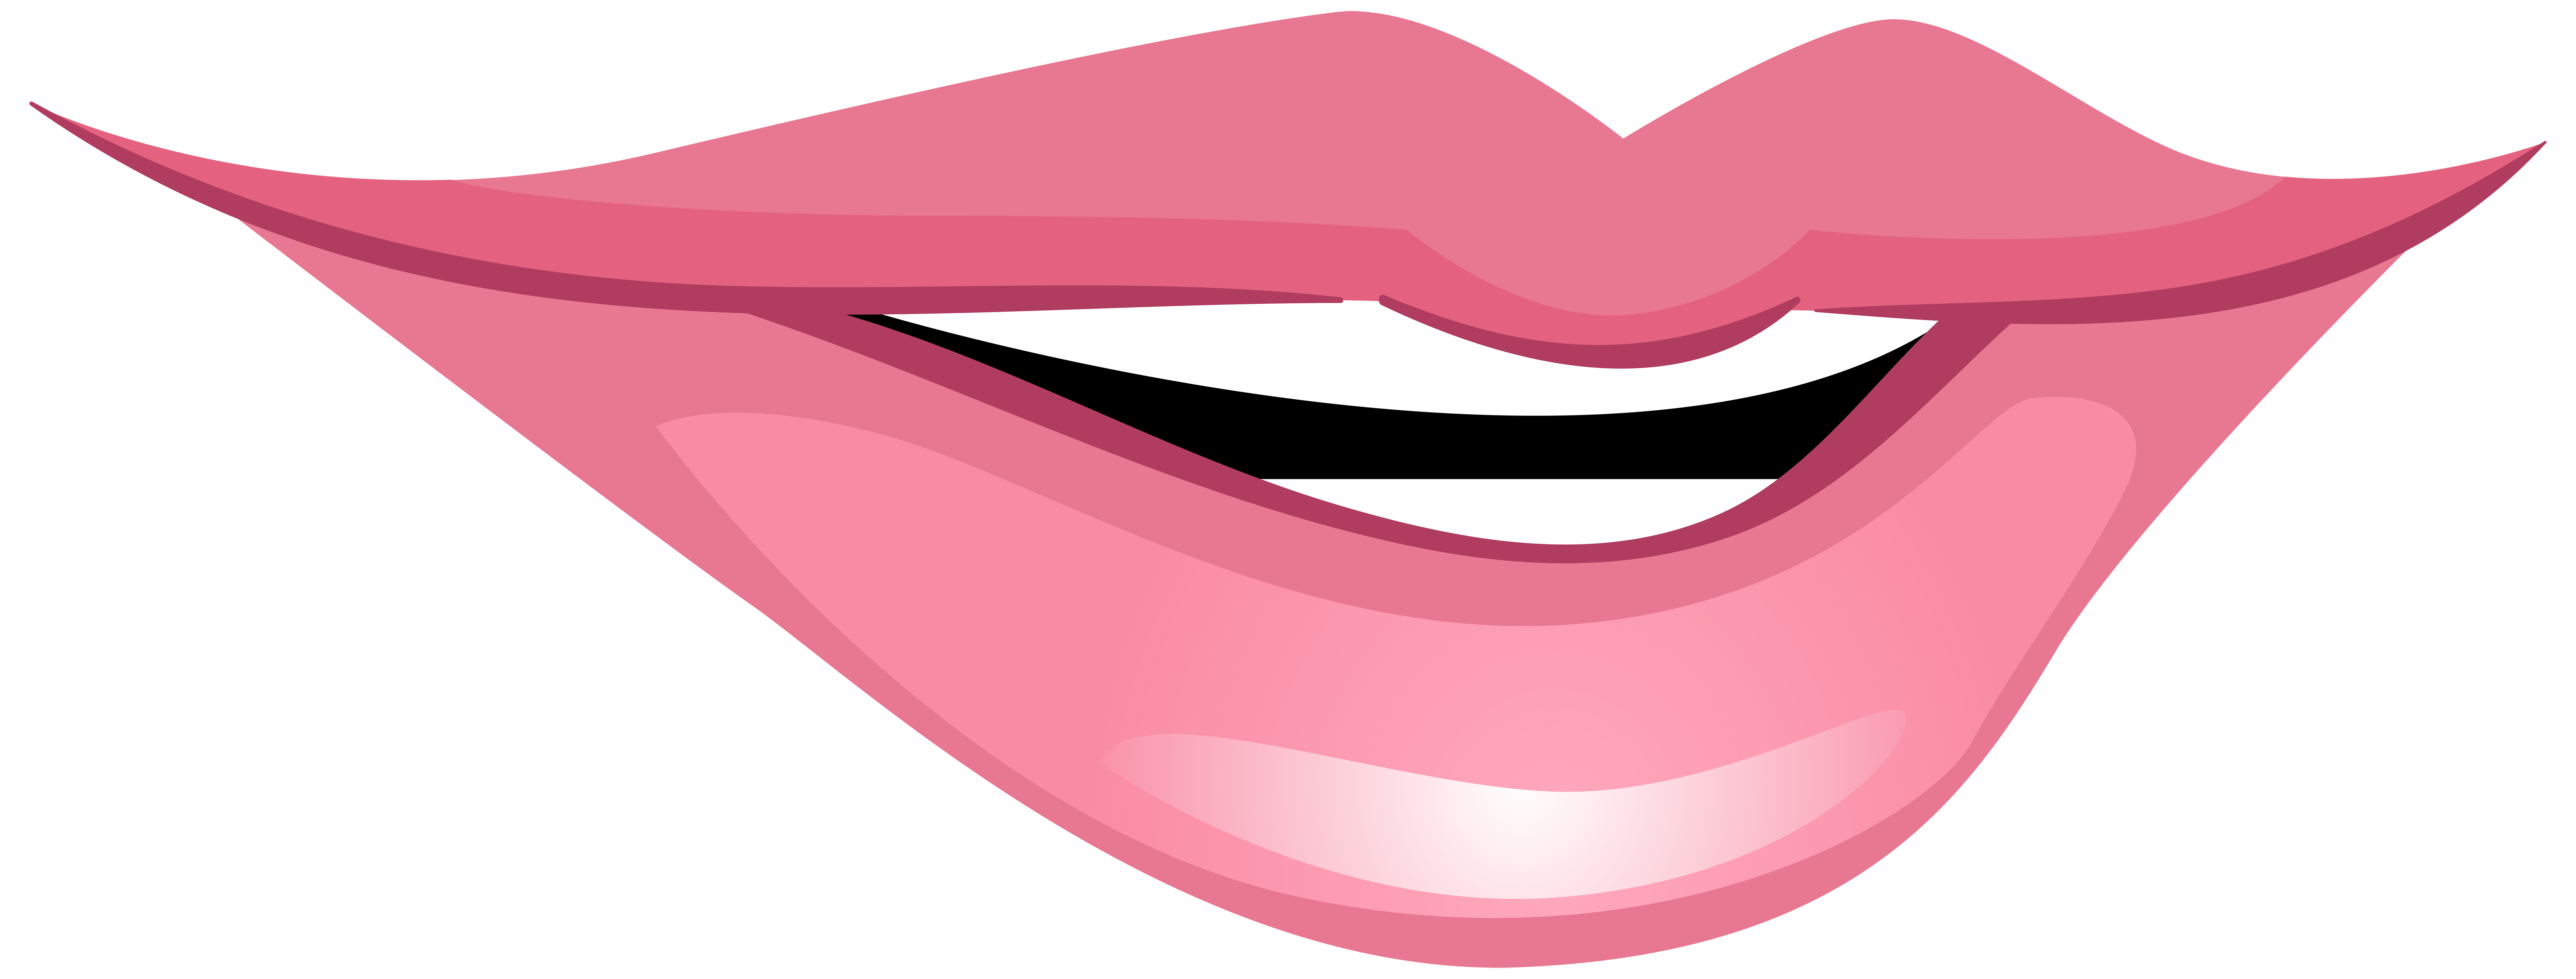 Pink Smiling Mouth PNG Clip Art.